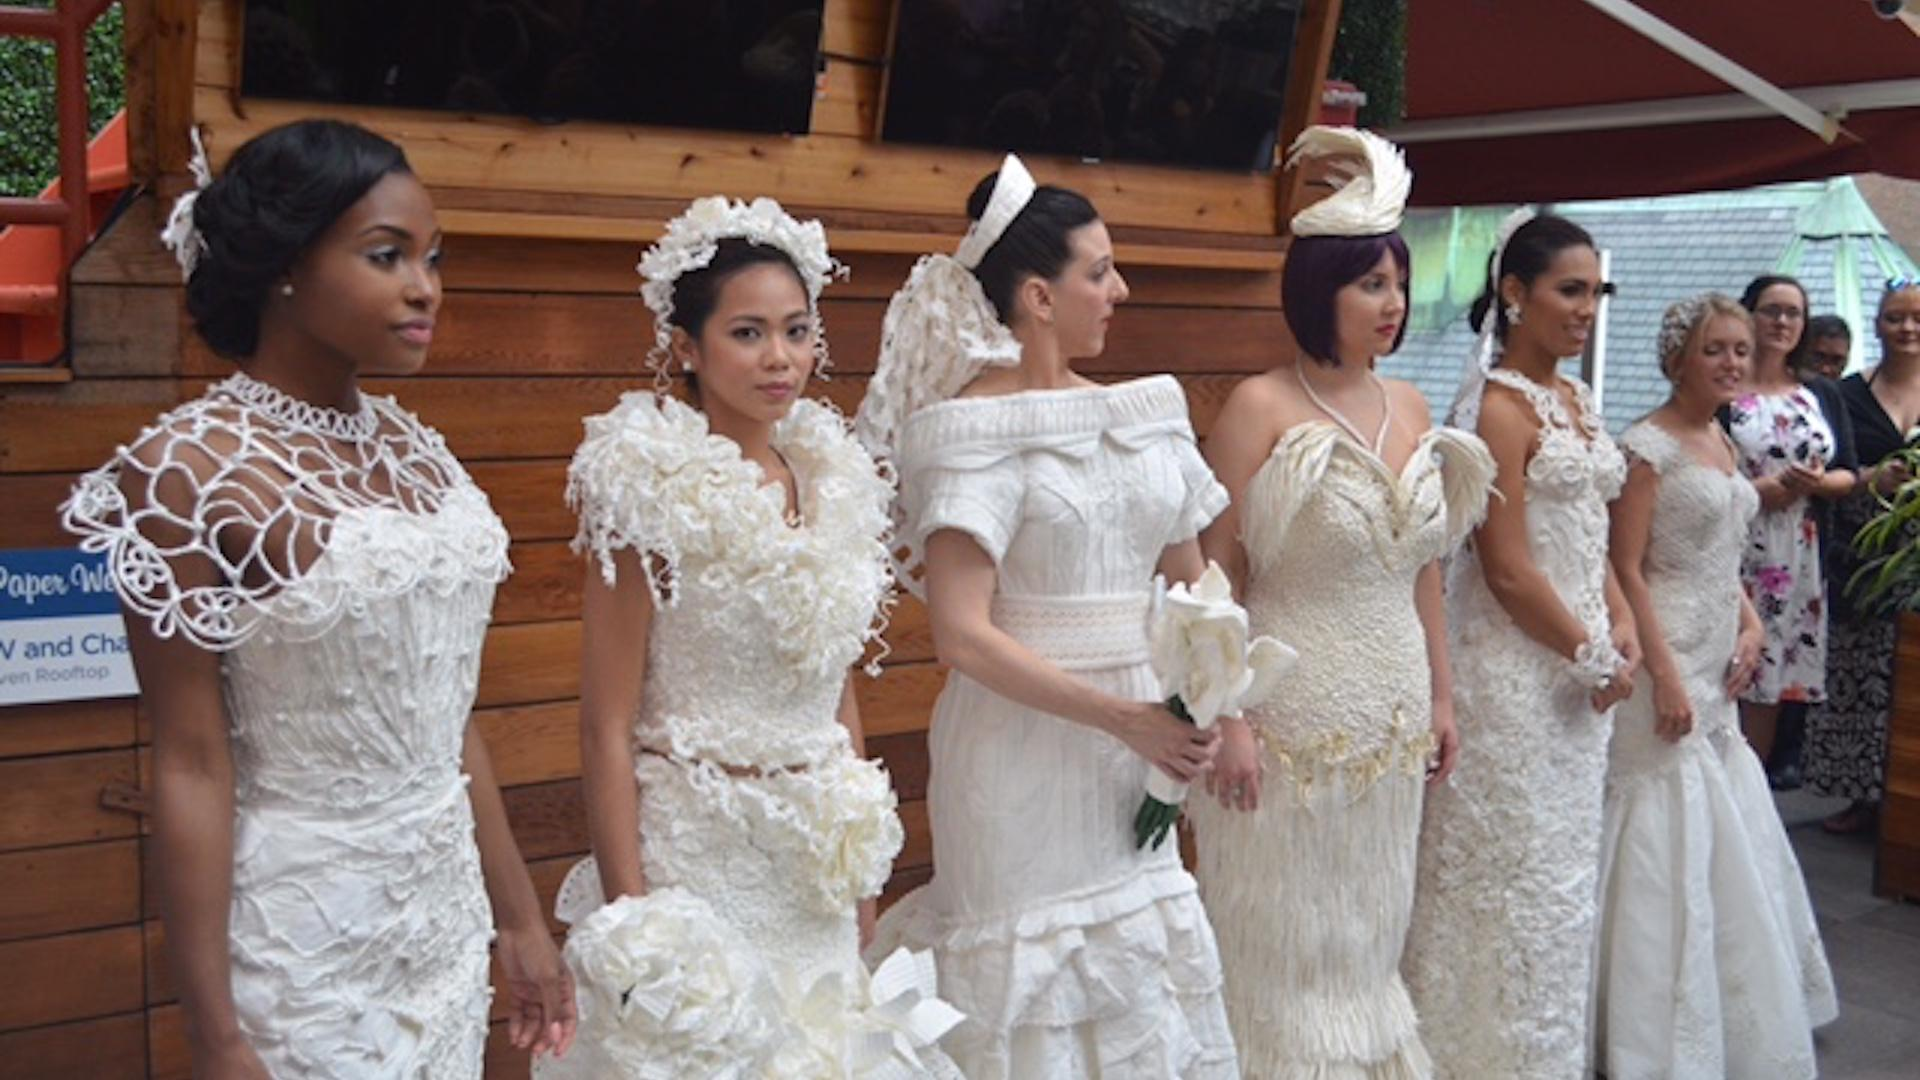 Toilet paper transforms into bridal attire for annual contest